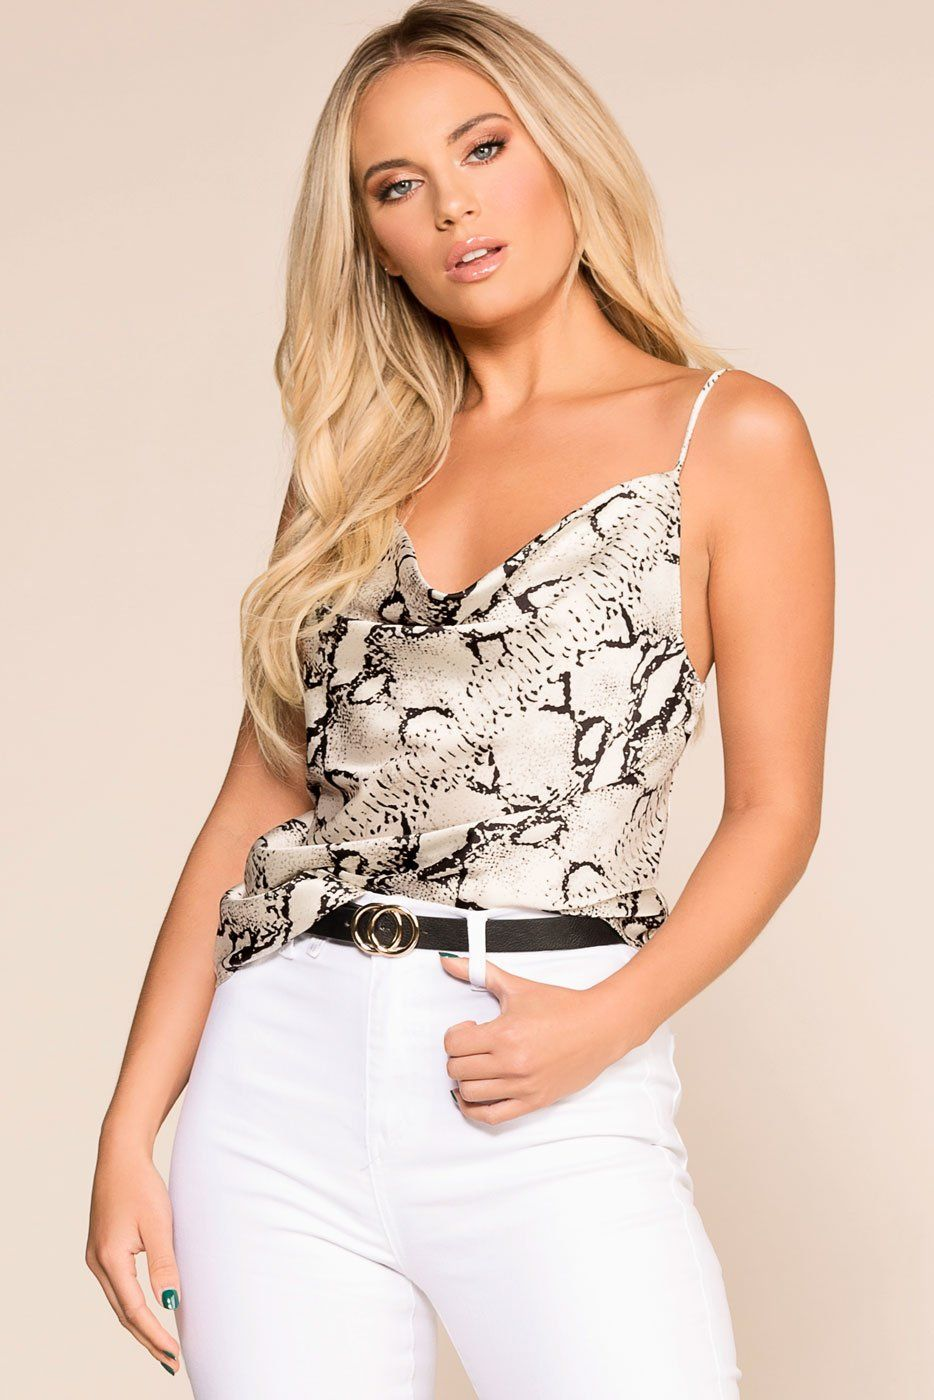 07268d754933f Do Your Thing White Snakeskin Print Cami Top